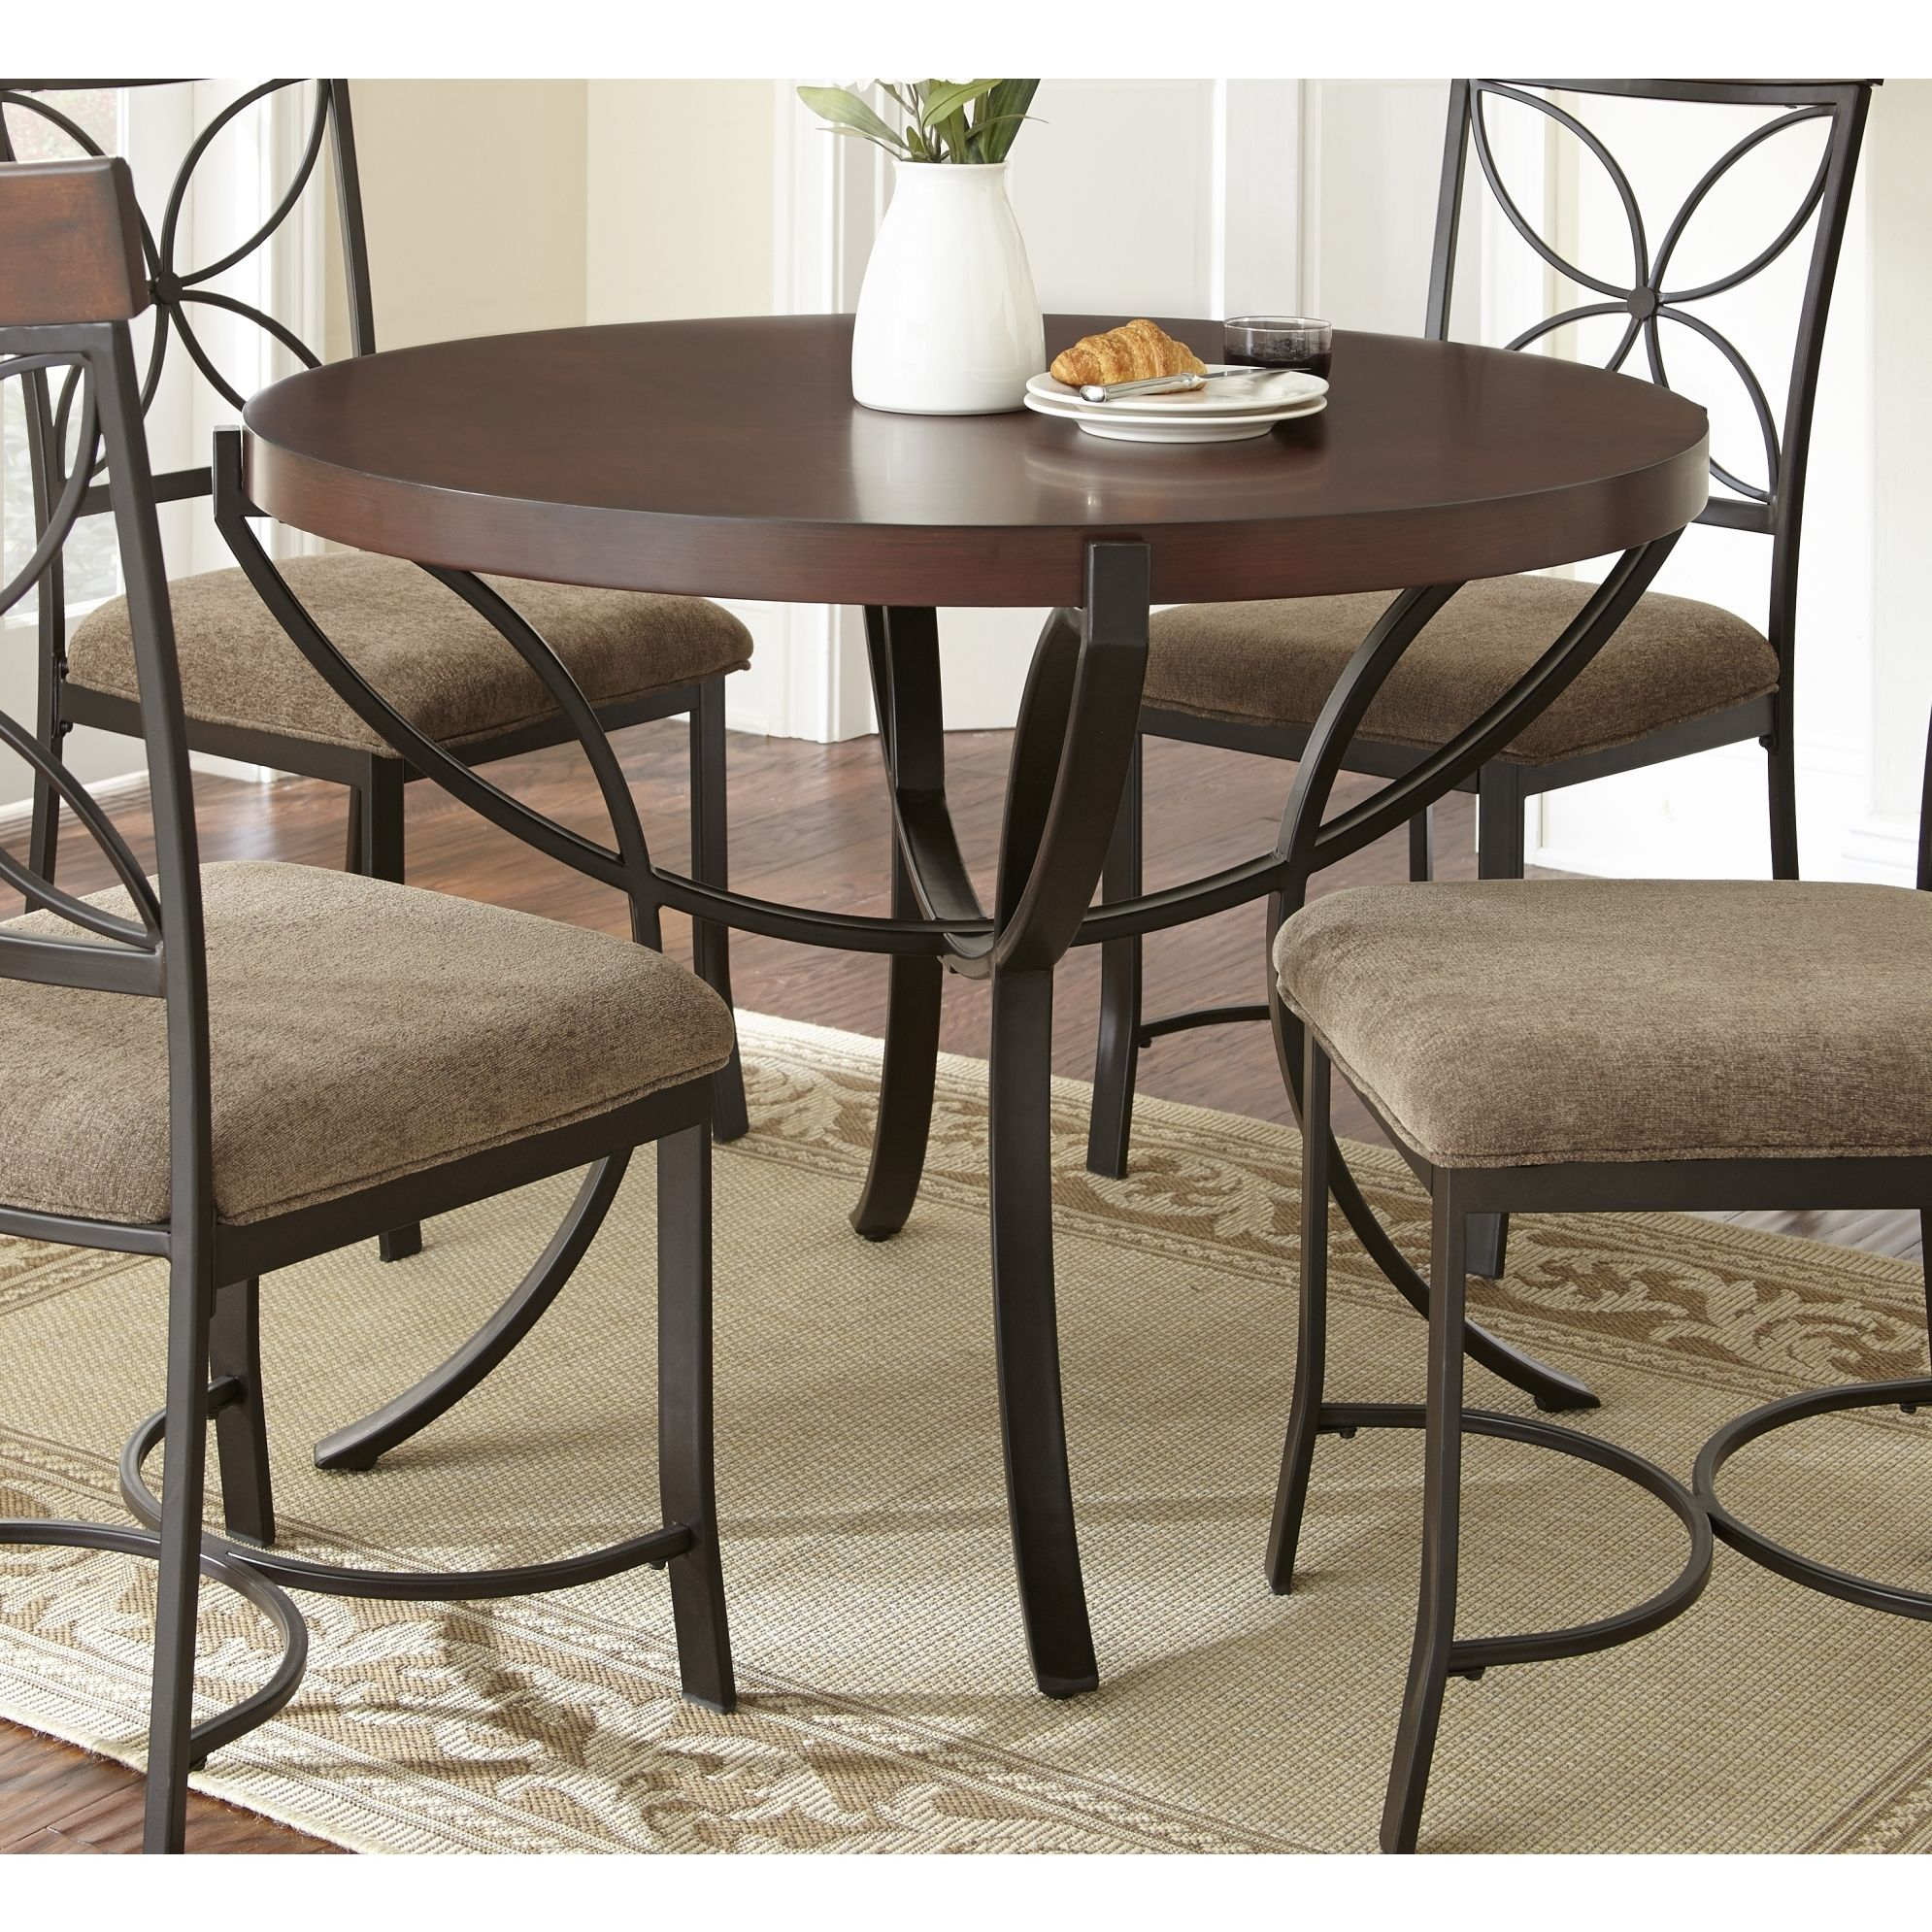 Perfect for casual dining or a more